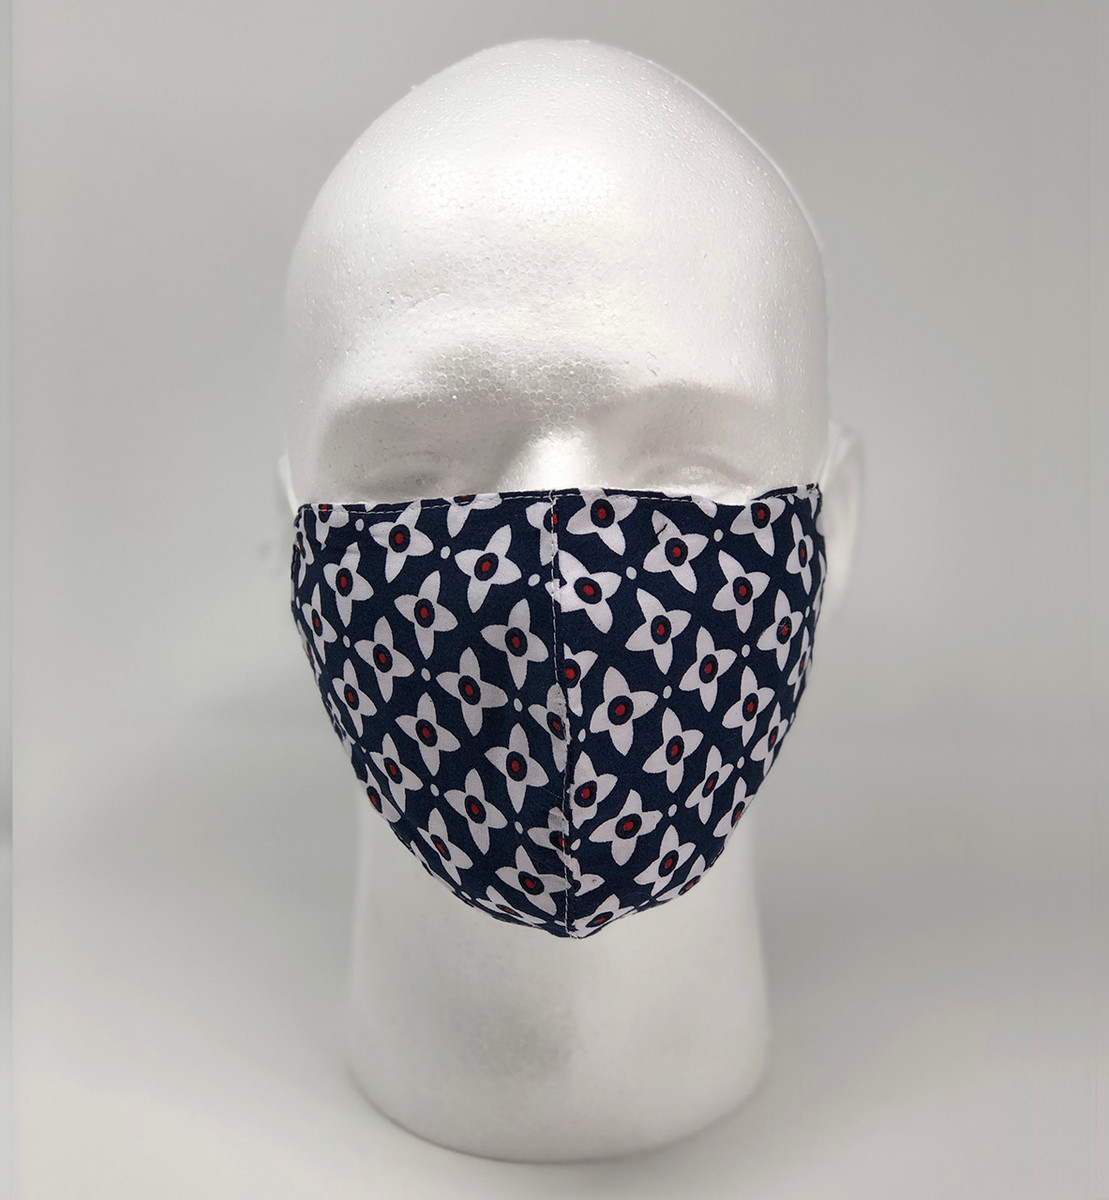 Graphic Fashion Mask - Navy Red White Floral